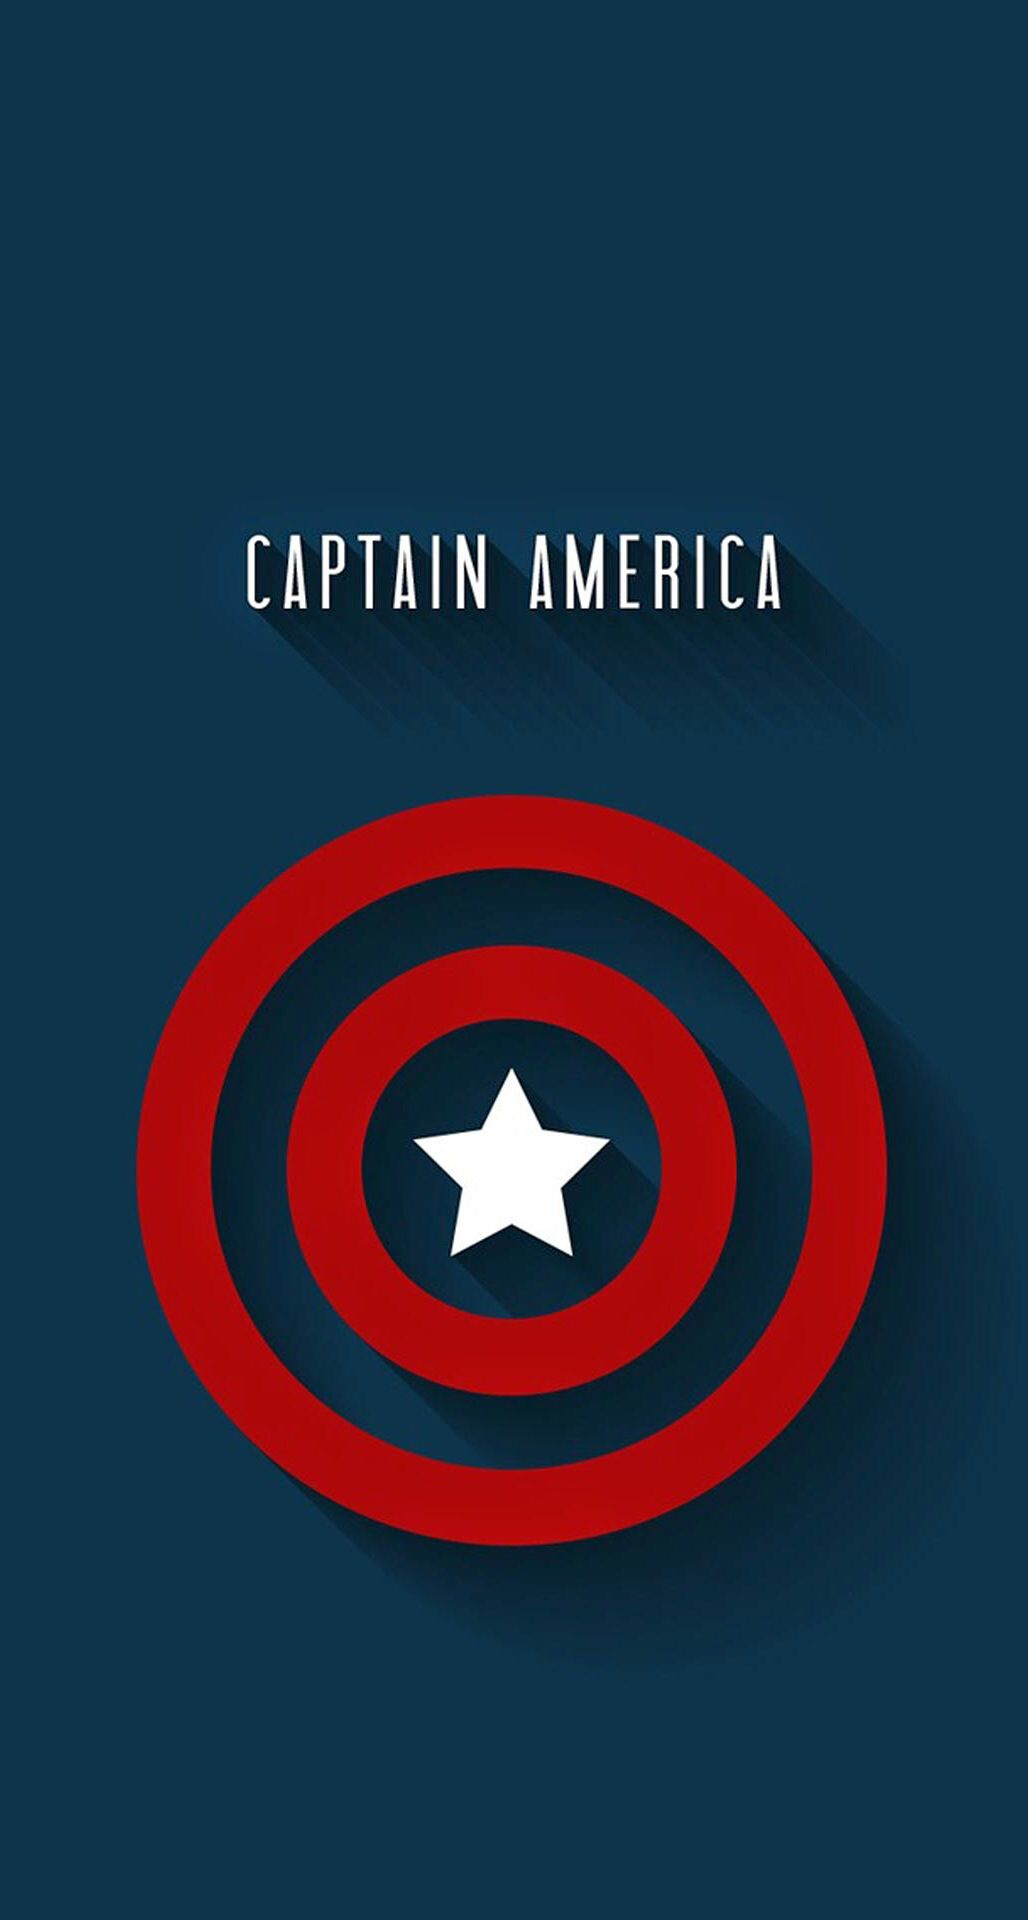 Captain America Captain America Wallpaper Marvel Wallpaper Captain America Logo